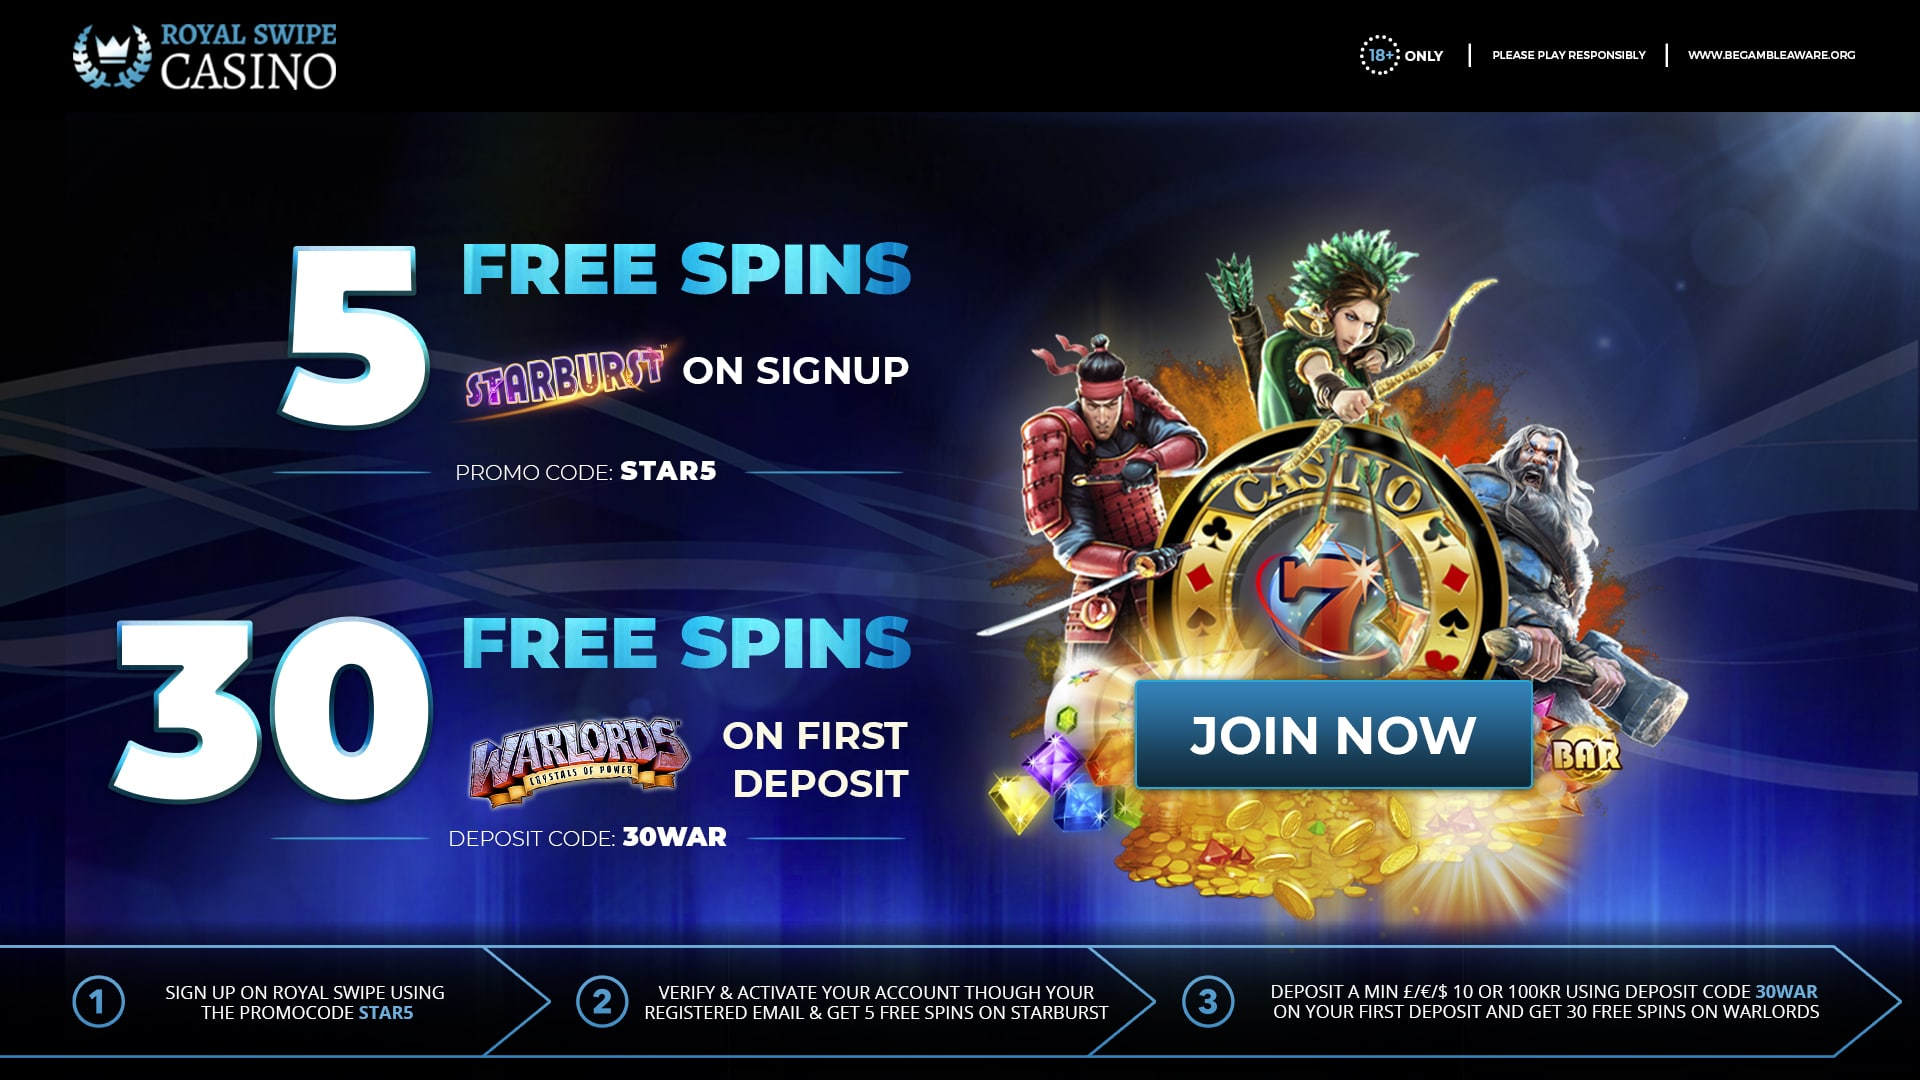 Get Free Spins On Starburst And Warlords Slot Games